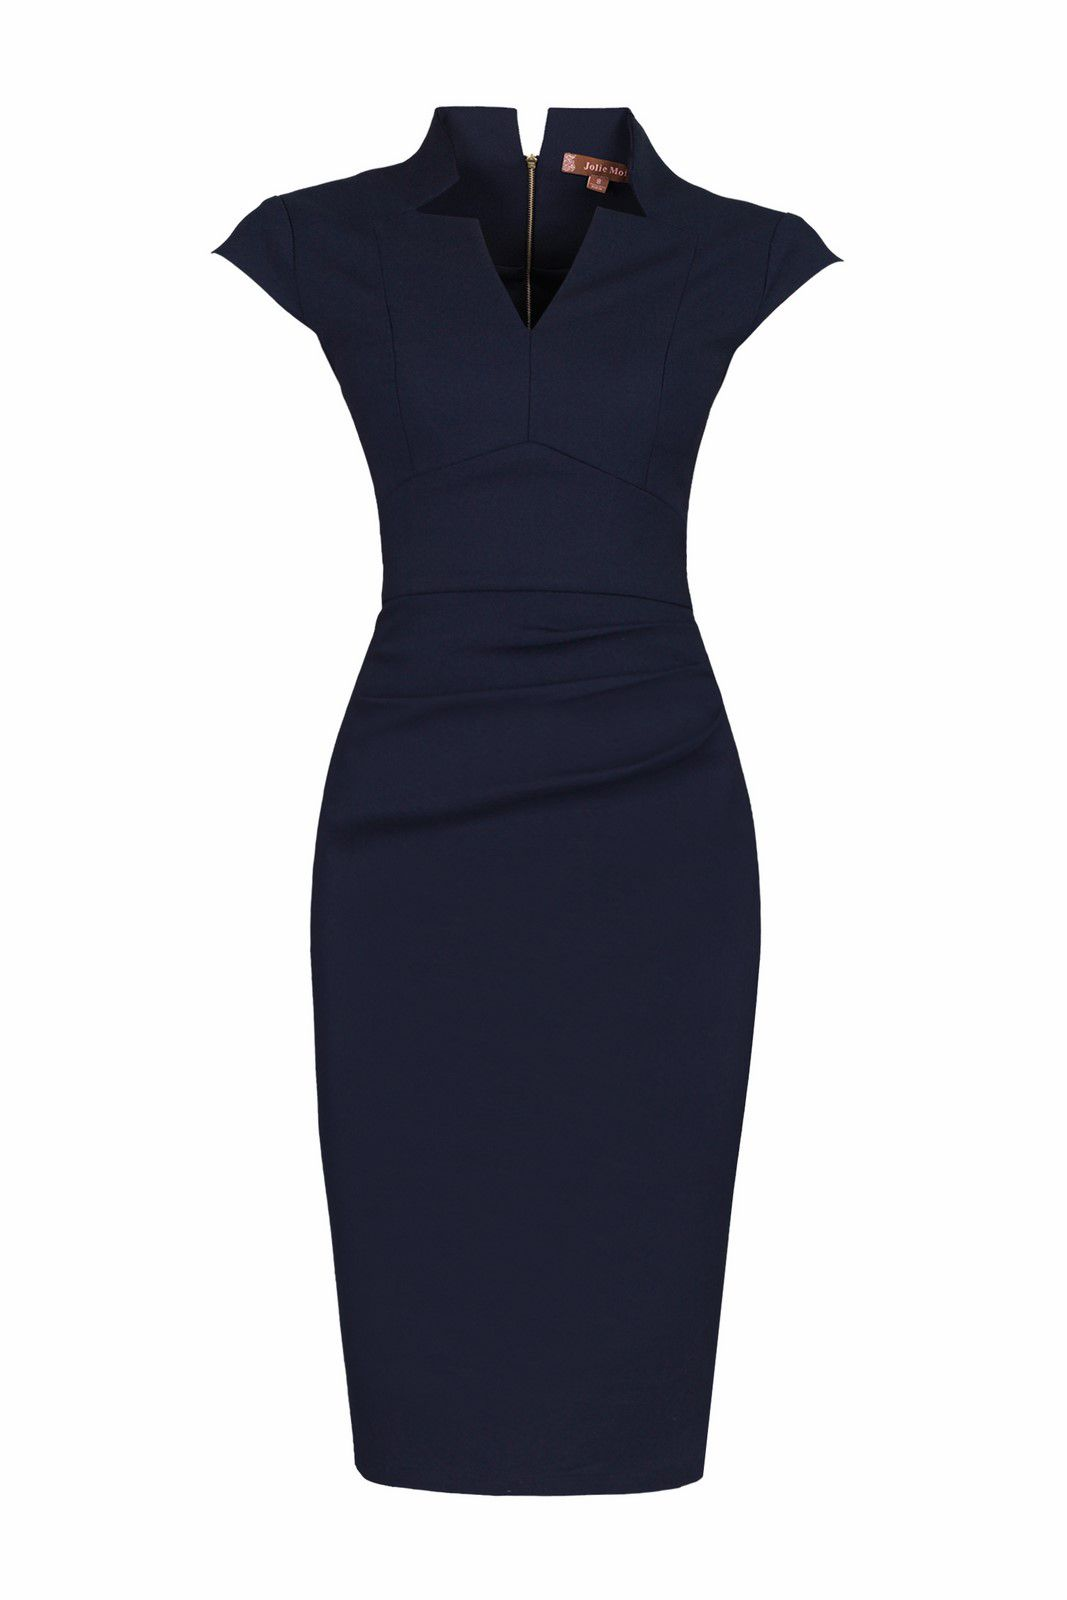 Jolie Moi High Collar V Neck Ruched Dress, Blue